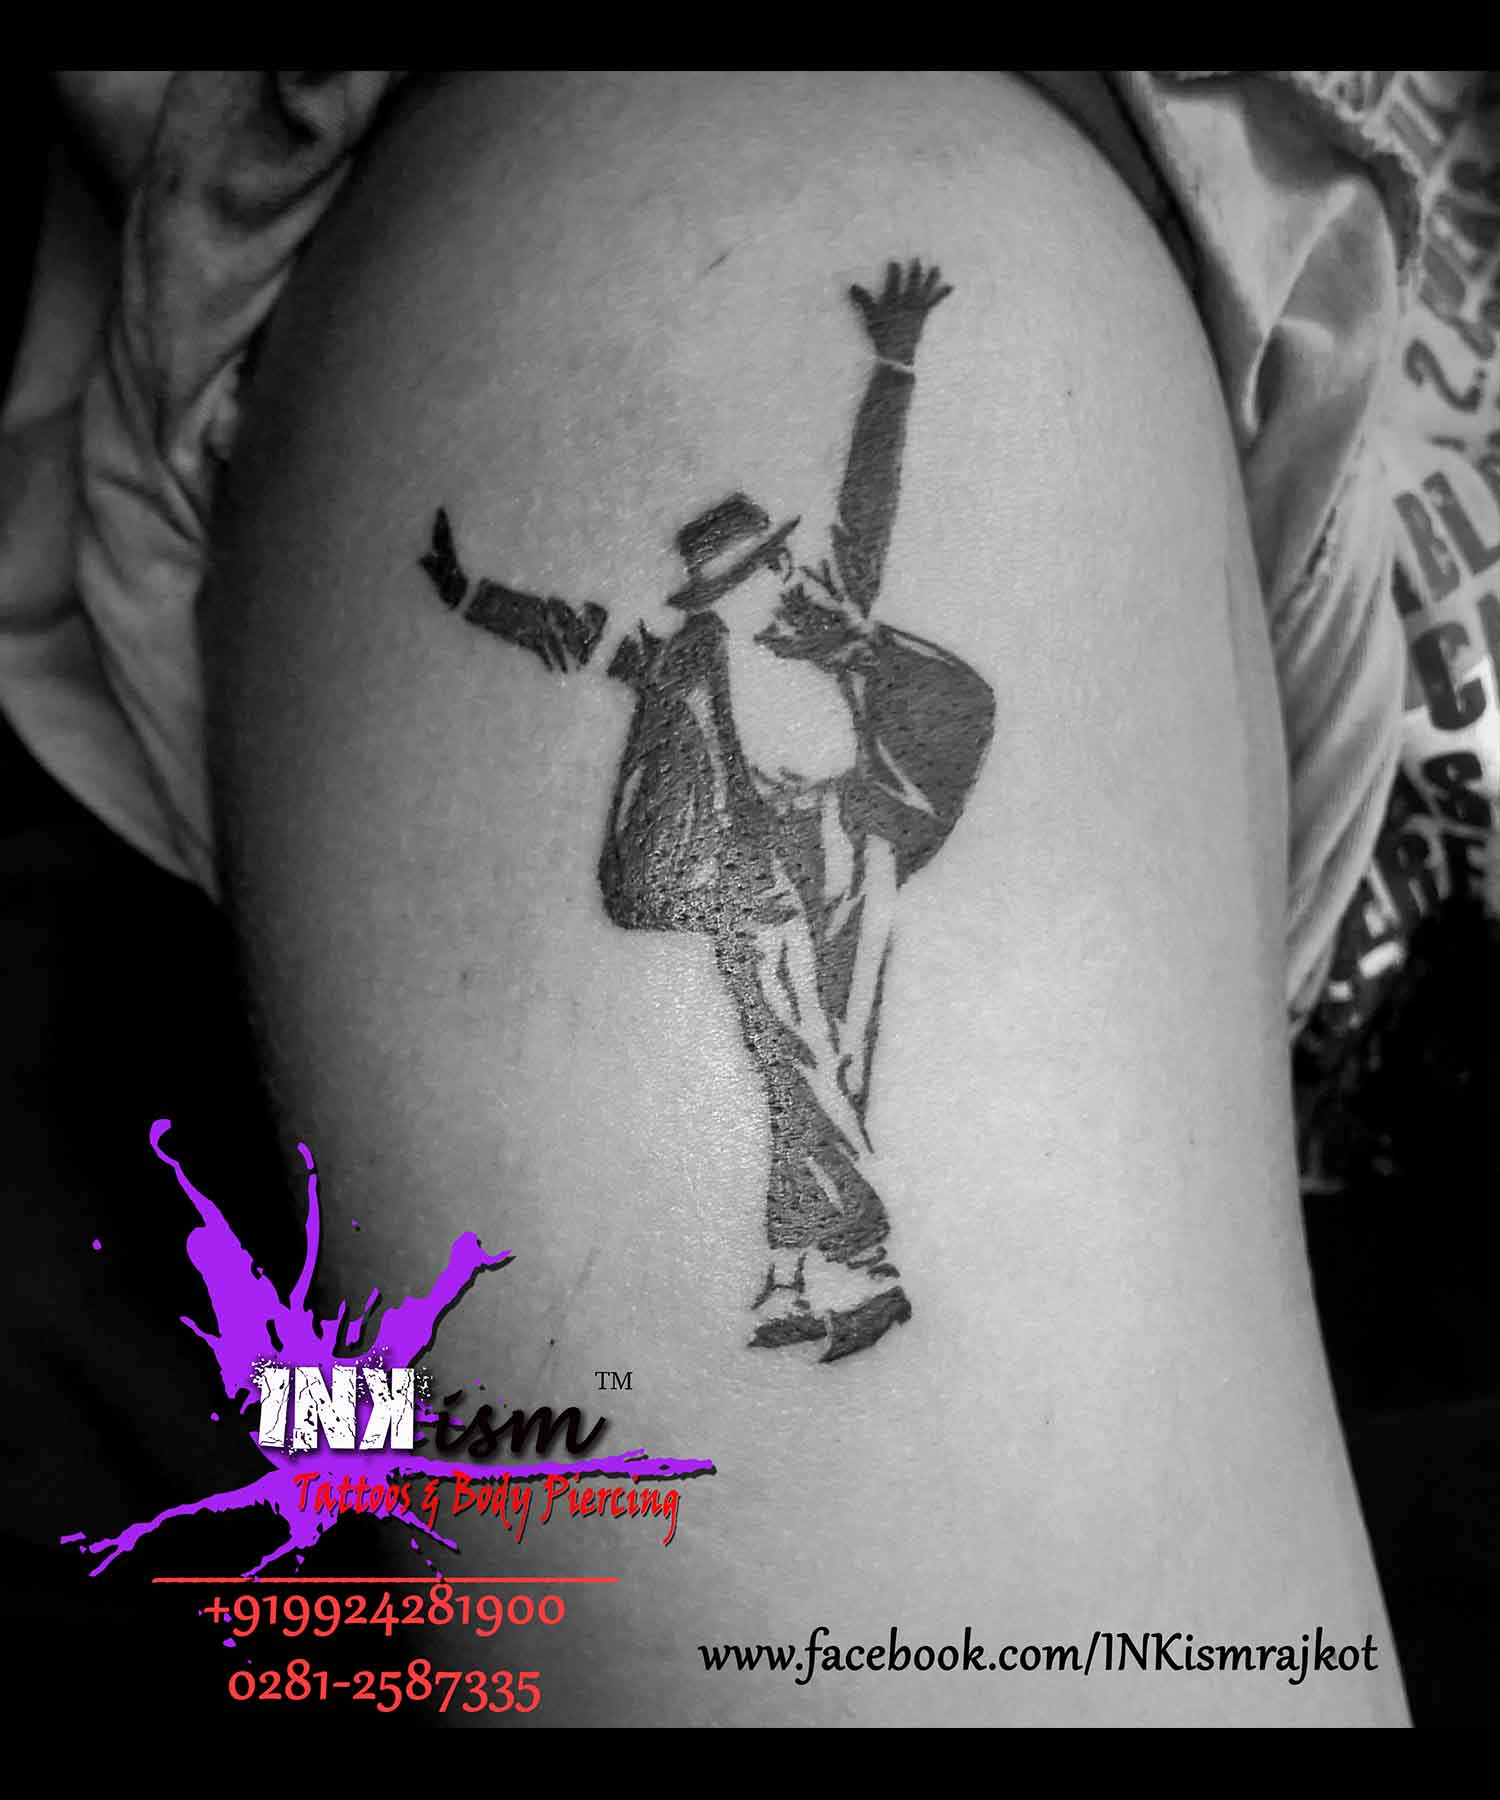 Micheal Jackson reverse Tattoo, Reverse tattoo, MJ Tattoo, Inkism Tattoo and body piercing rajkot gujarat